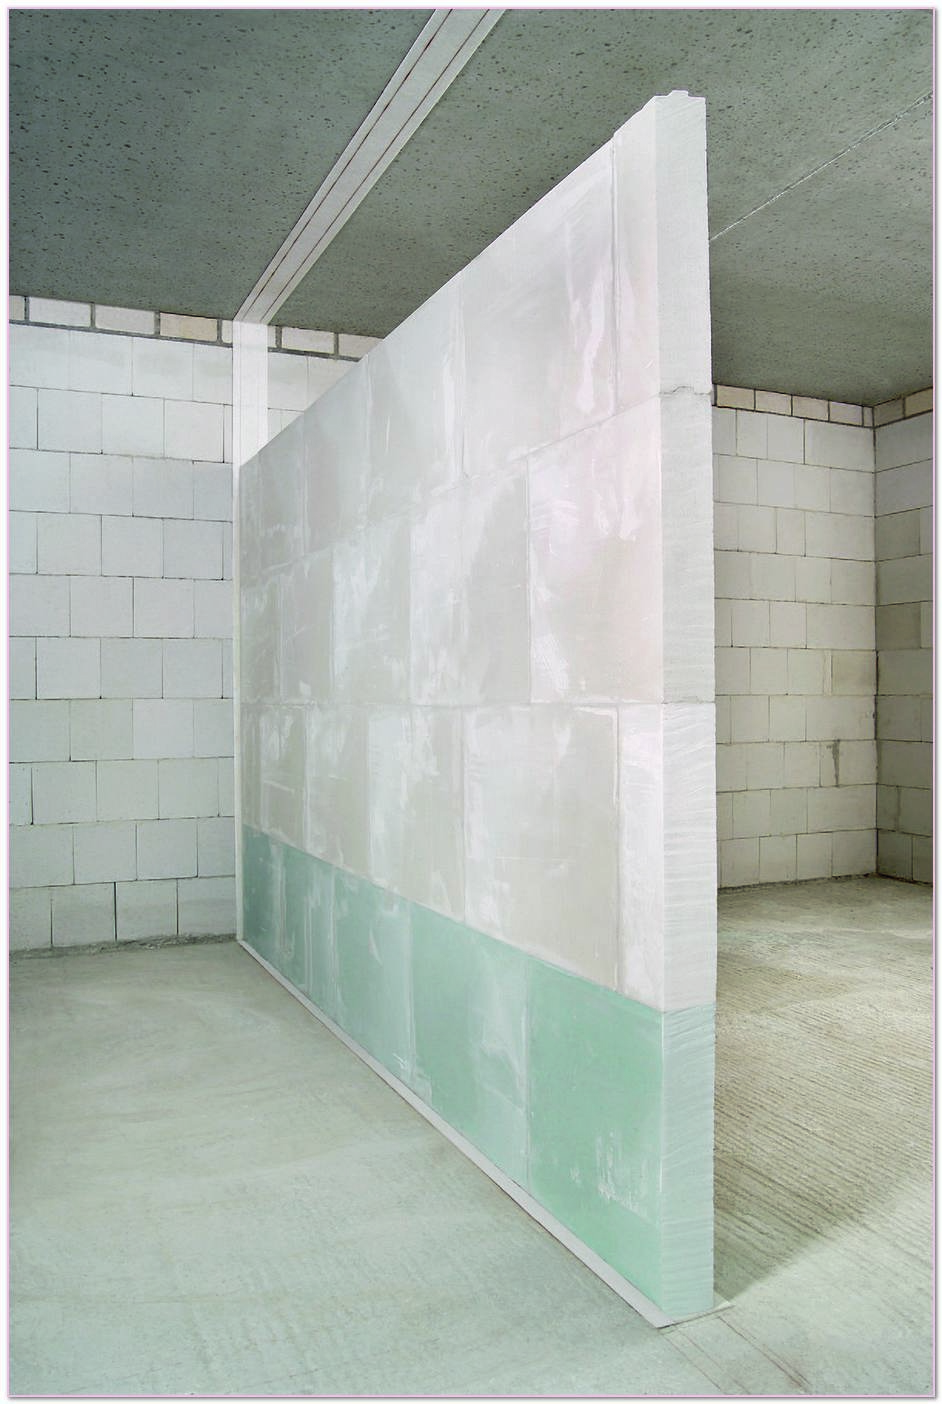 Standard Specification For Nonloadbearing Concrete Units National Brick Research Center. Units Standard